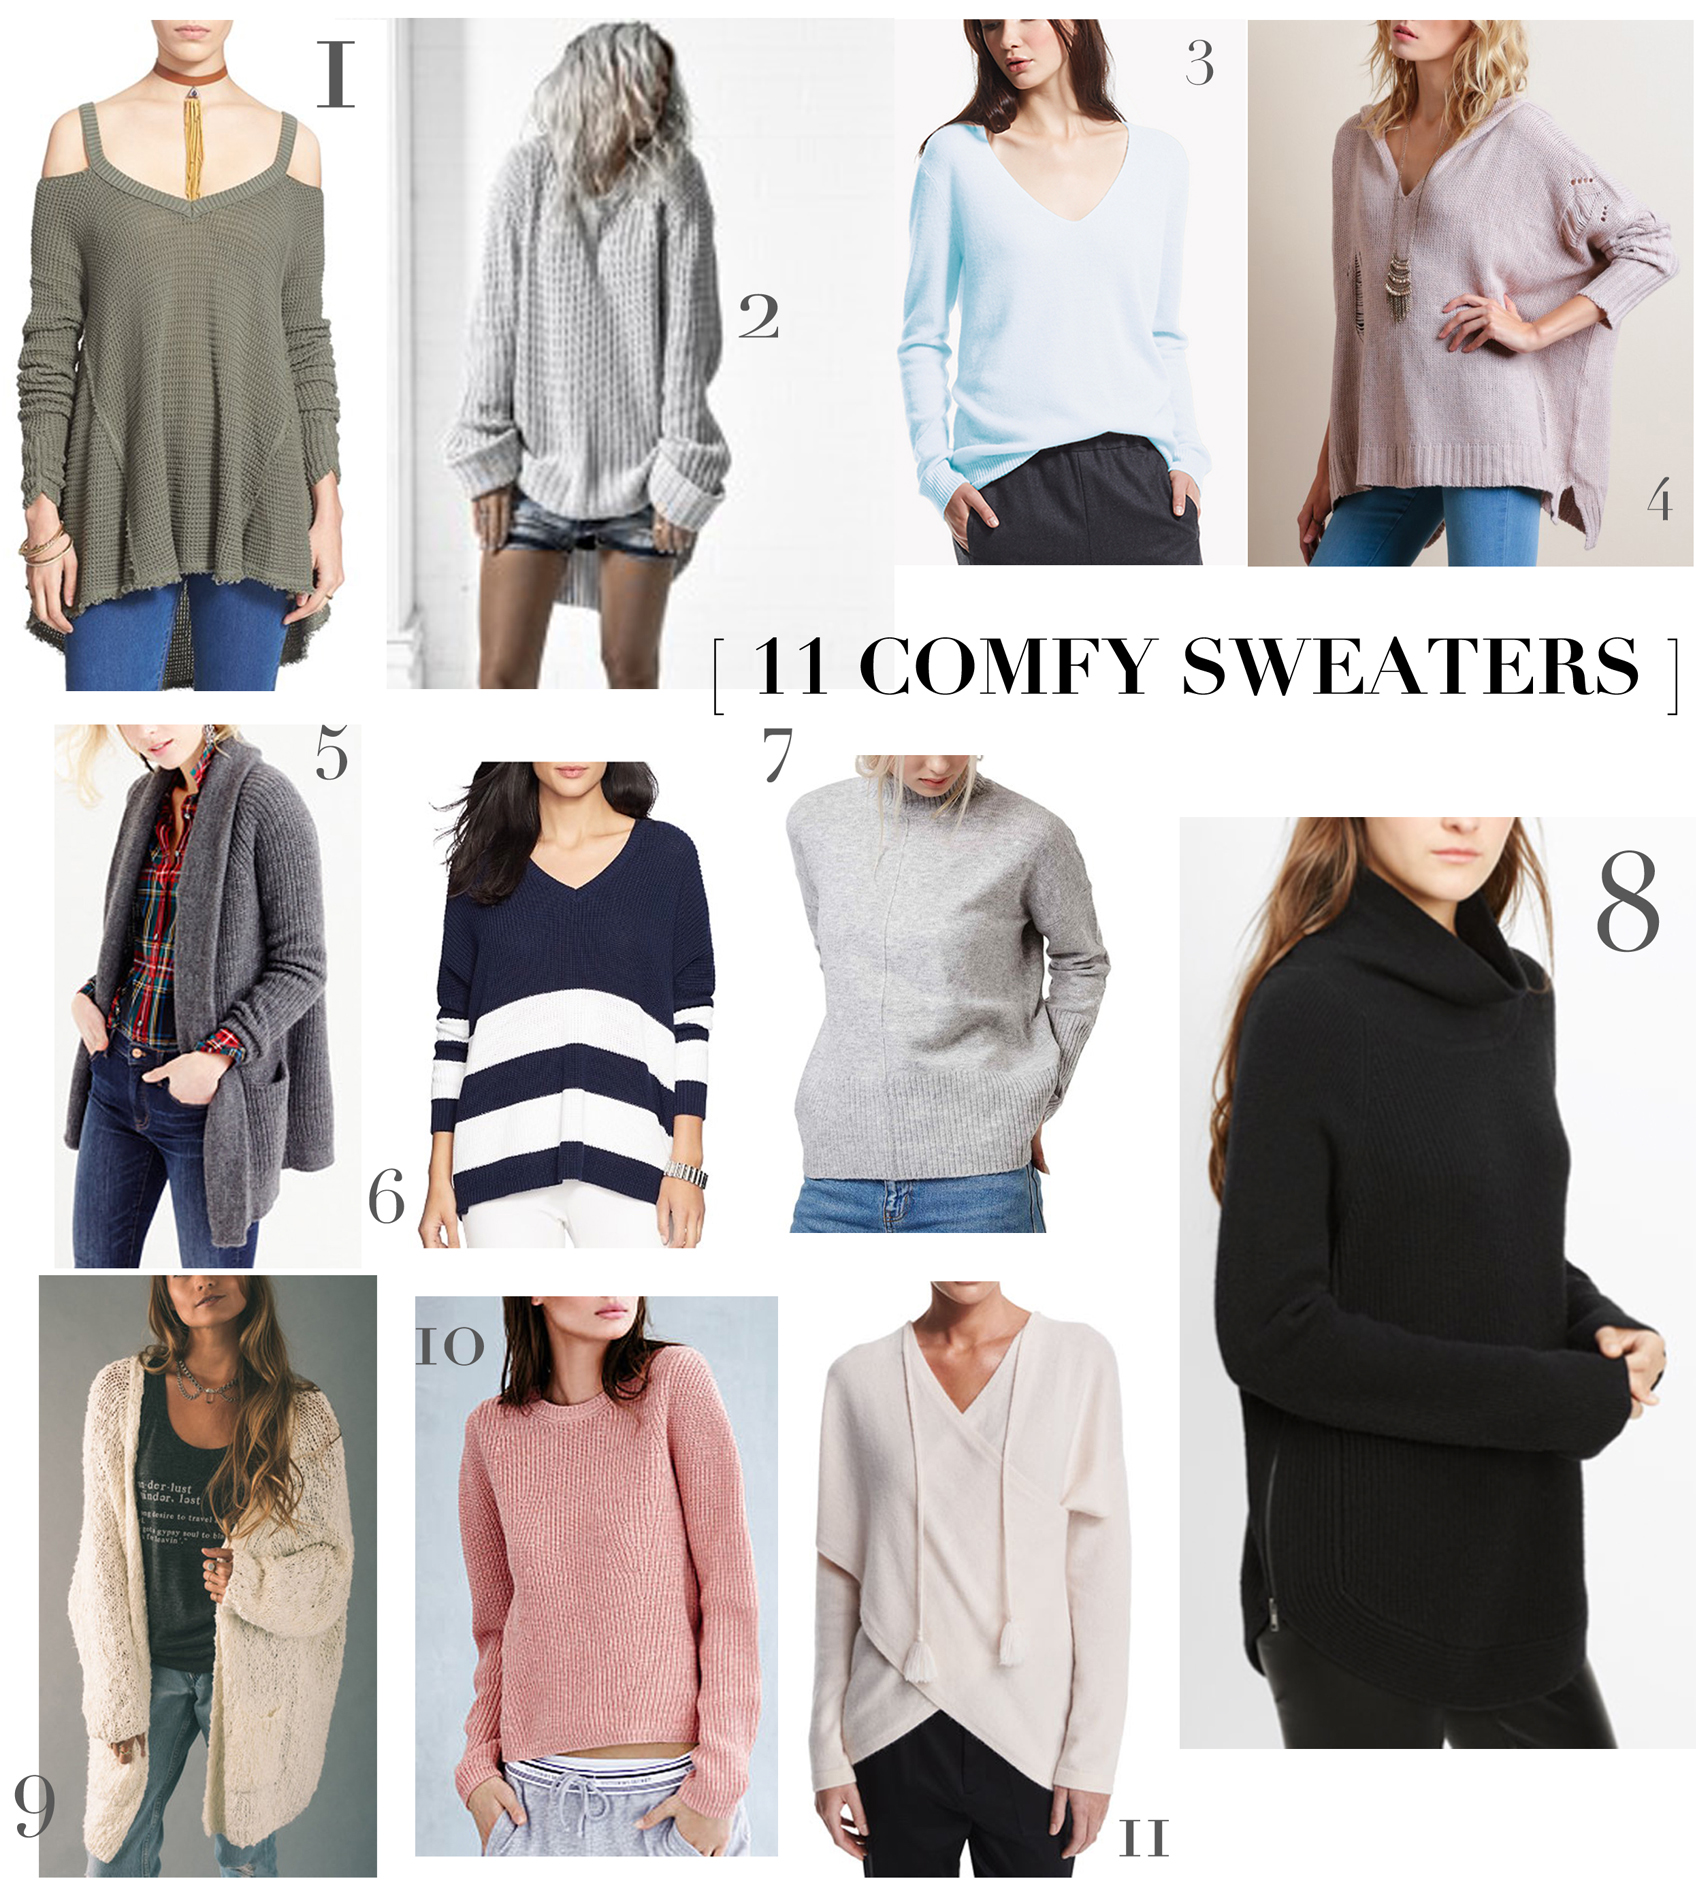 new comfy sweaters